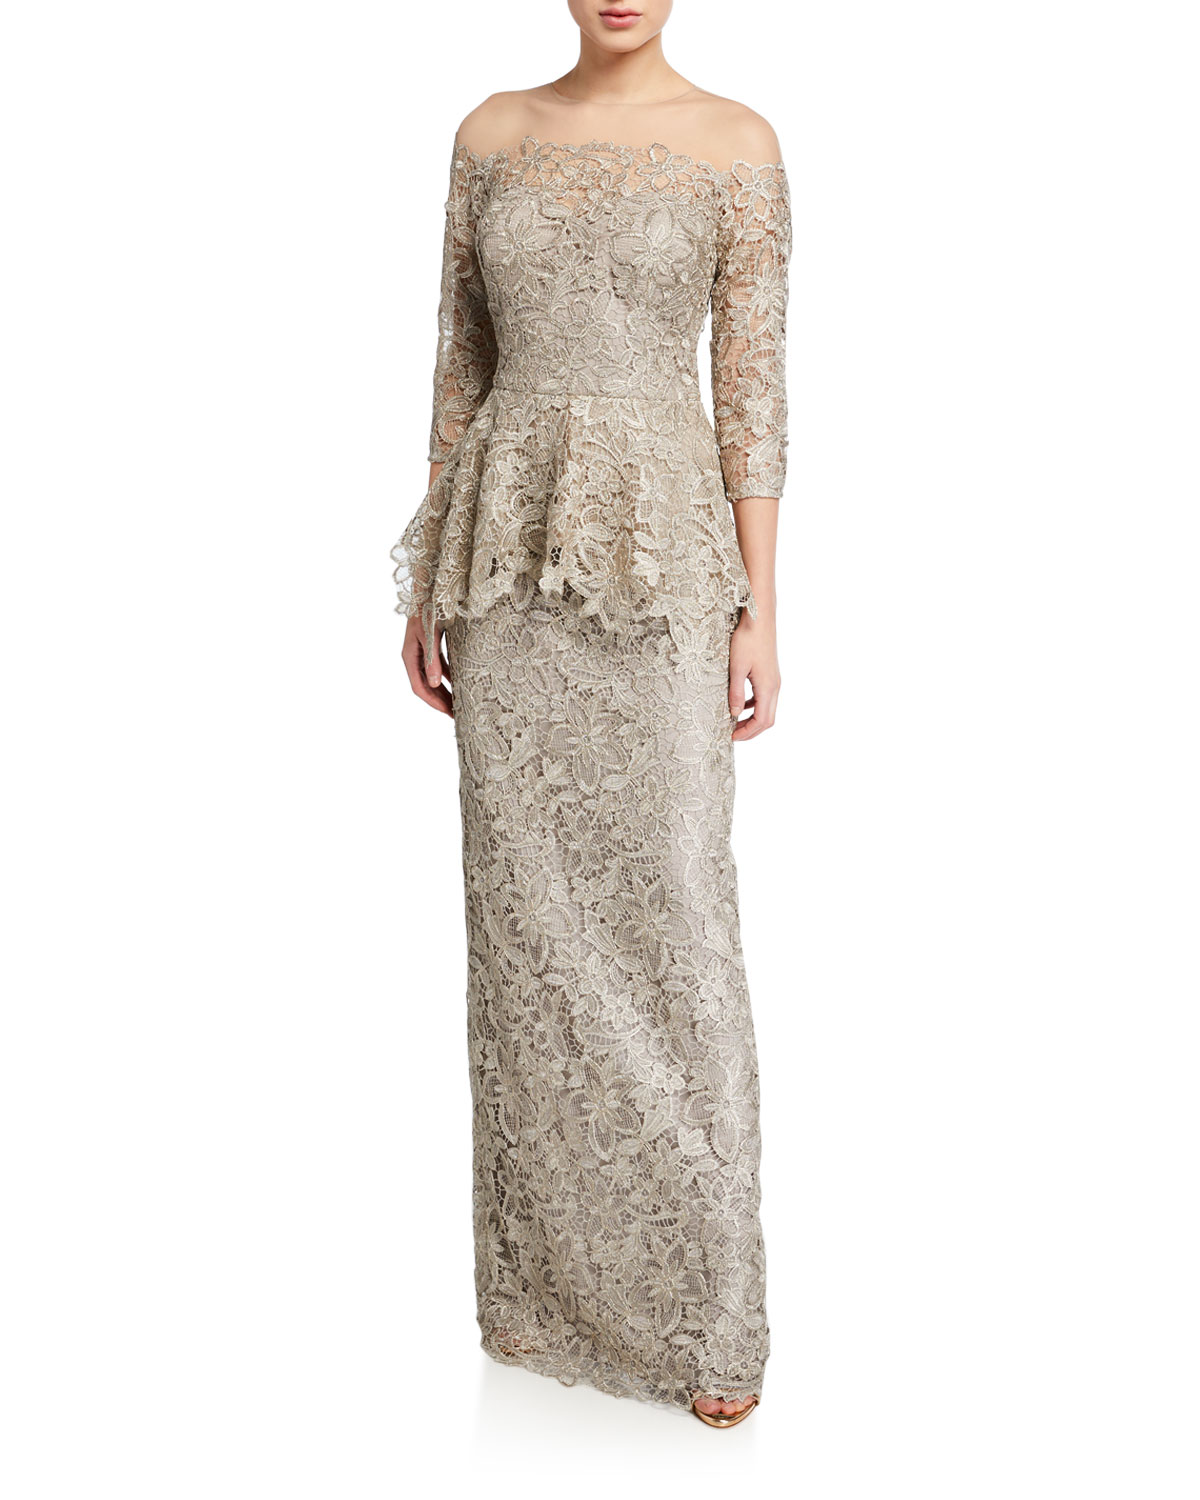 Rickie Freeman For Teri Jon Tops METALLIC LACE 3/4-SLEEVE SHEER YOKE PEPLUM GOWN